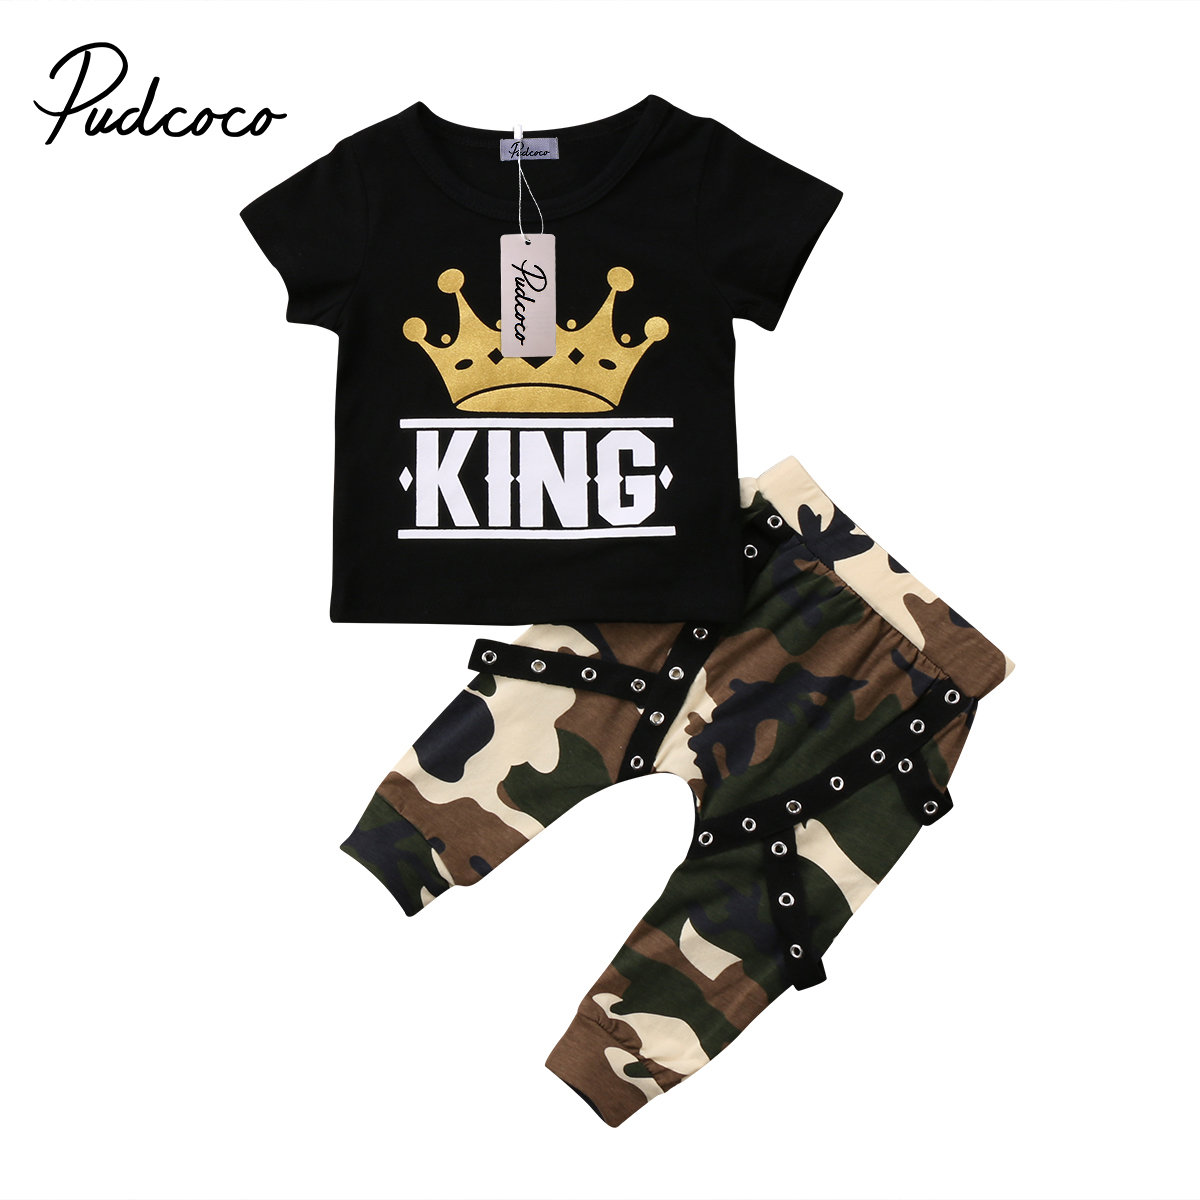 Toddler Kids Baby Boys Clothing Short Sleeve Tops Crown T-shirt Camo Pants Outfits Set Summer